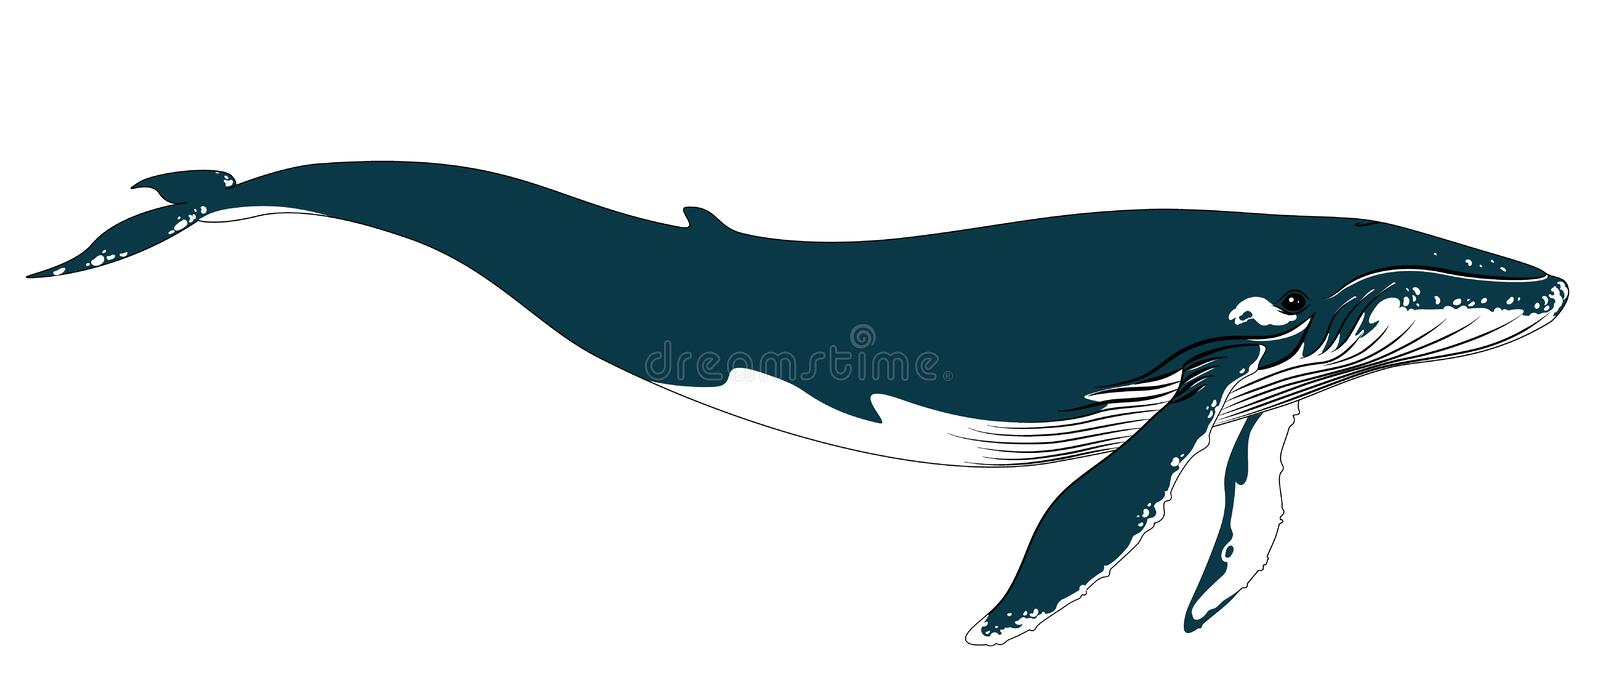 Realistic big blue whale on a white background. royalty free illustration